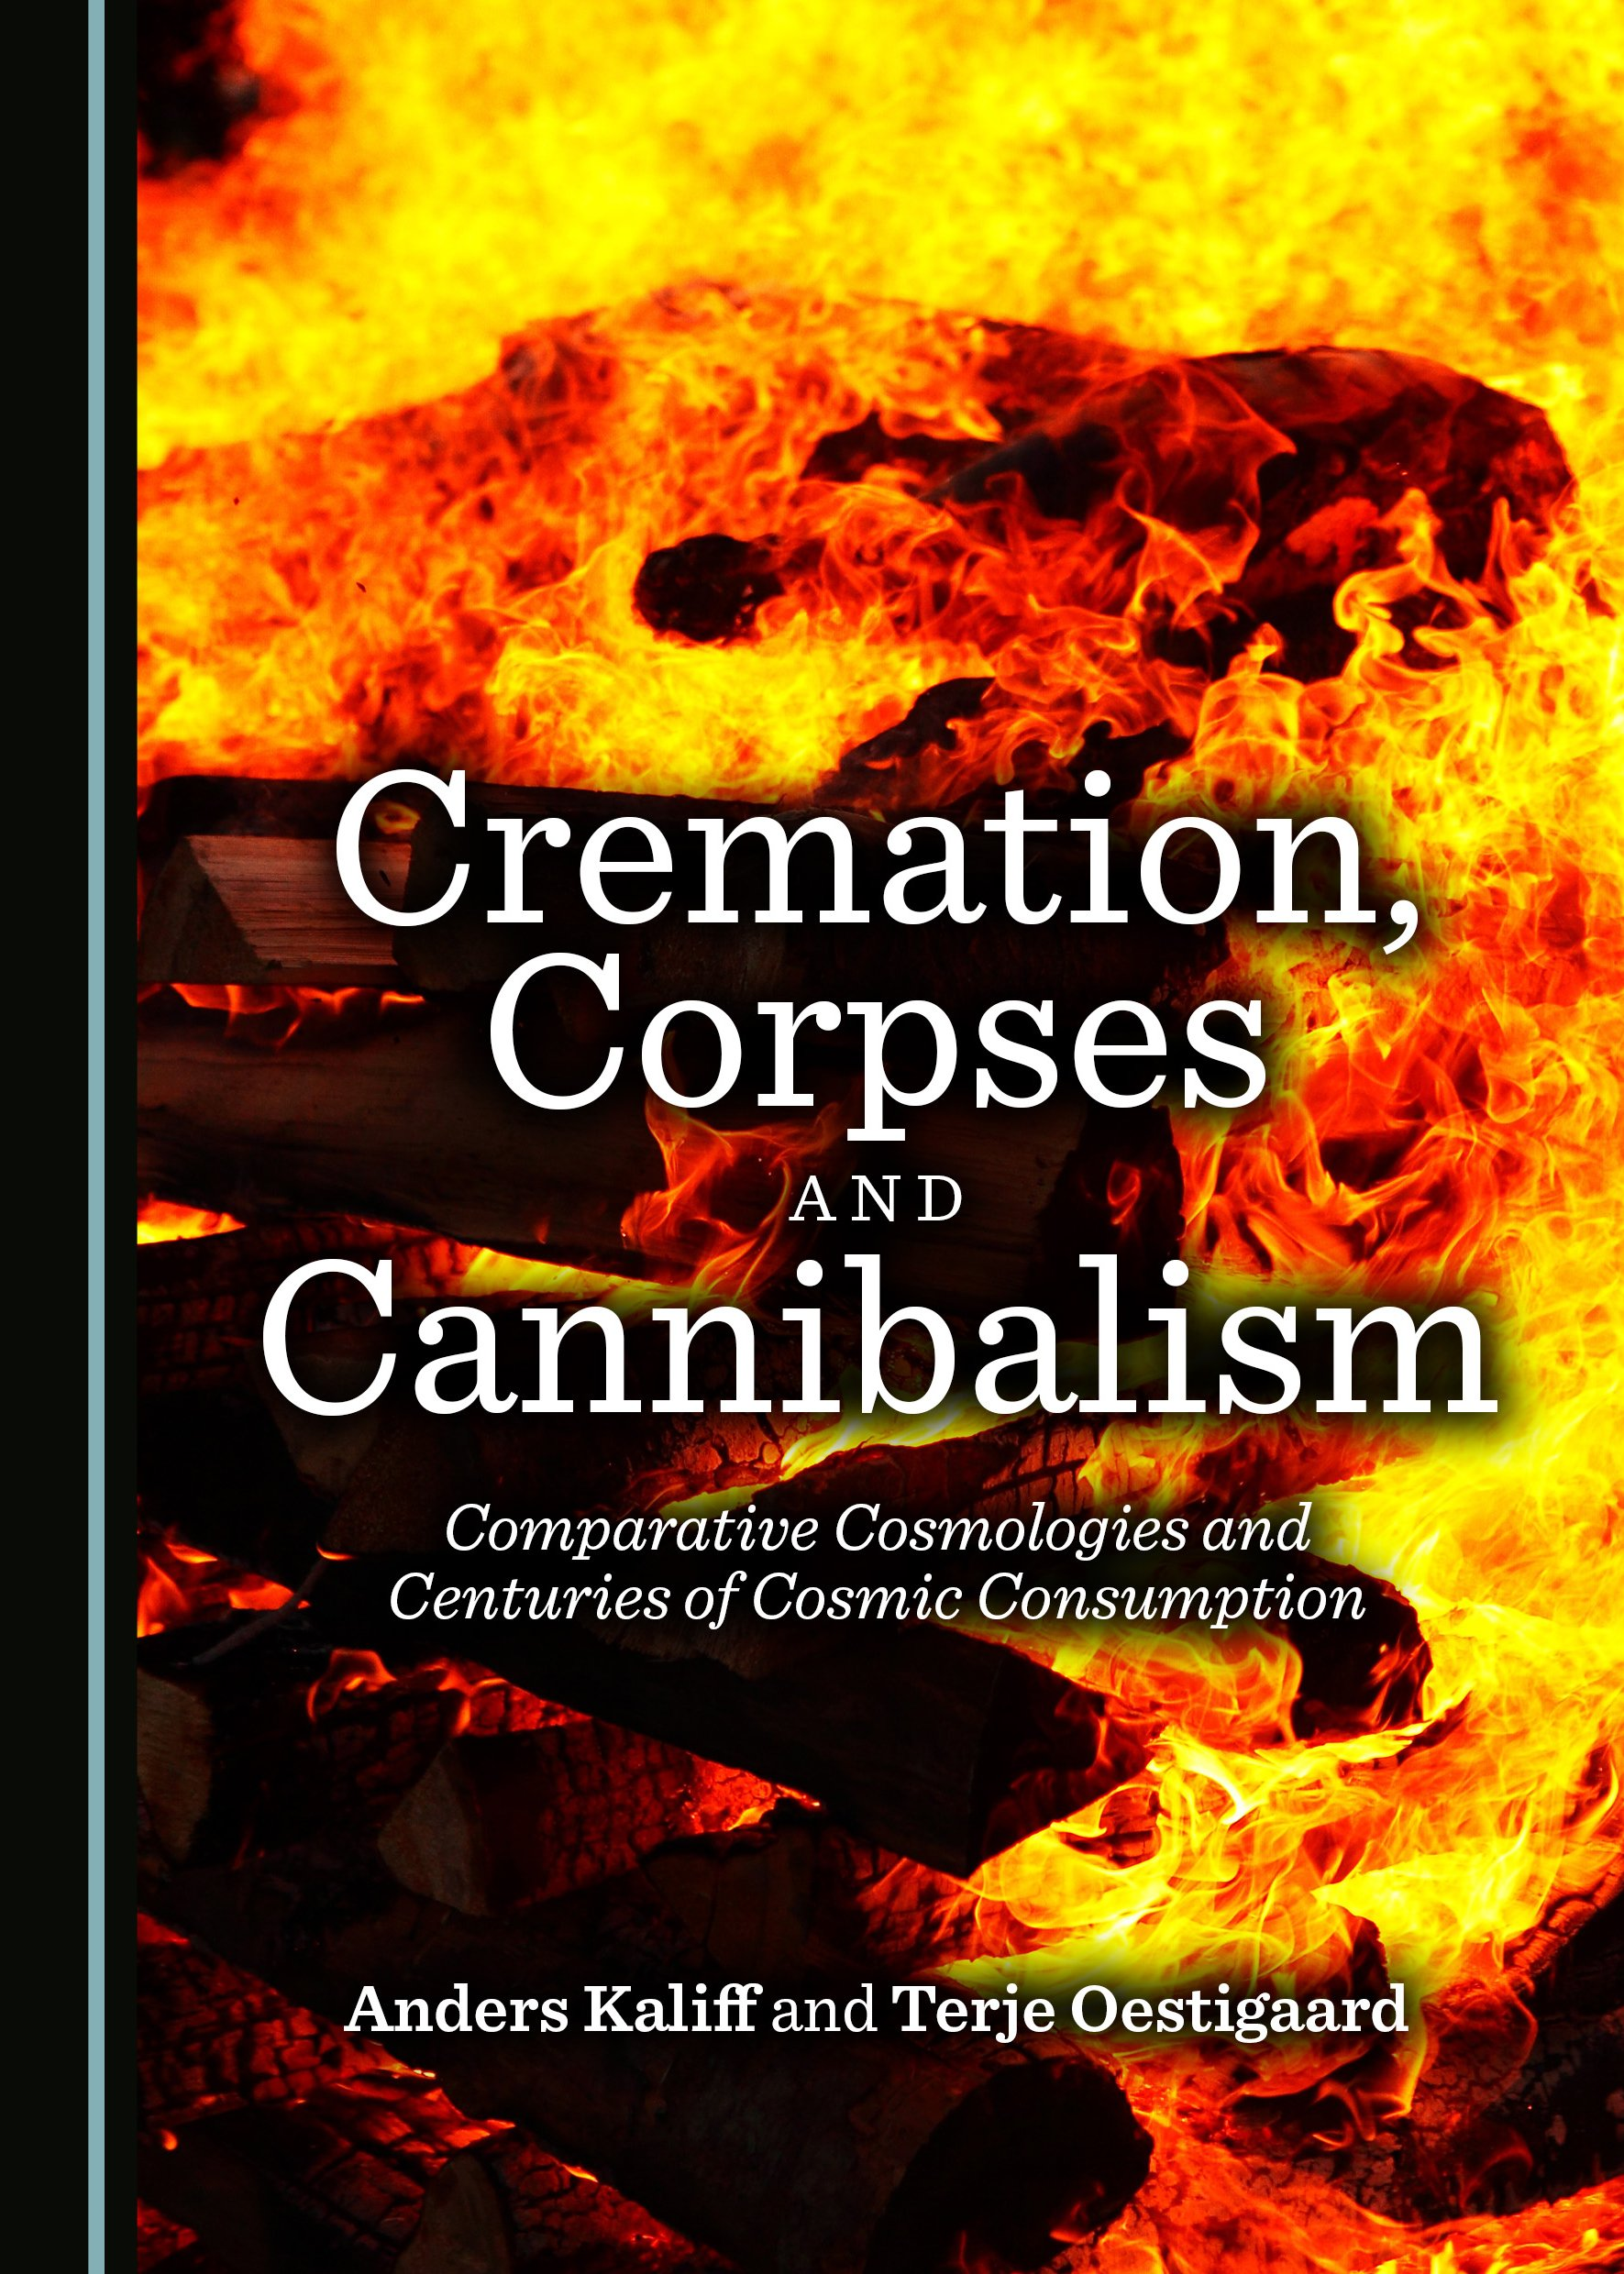 Cremation, Corpses and Cannibalism: Comparative Cosmologies and Centuries of Cosmic Consumption